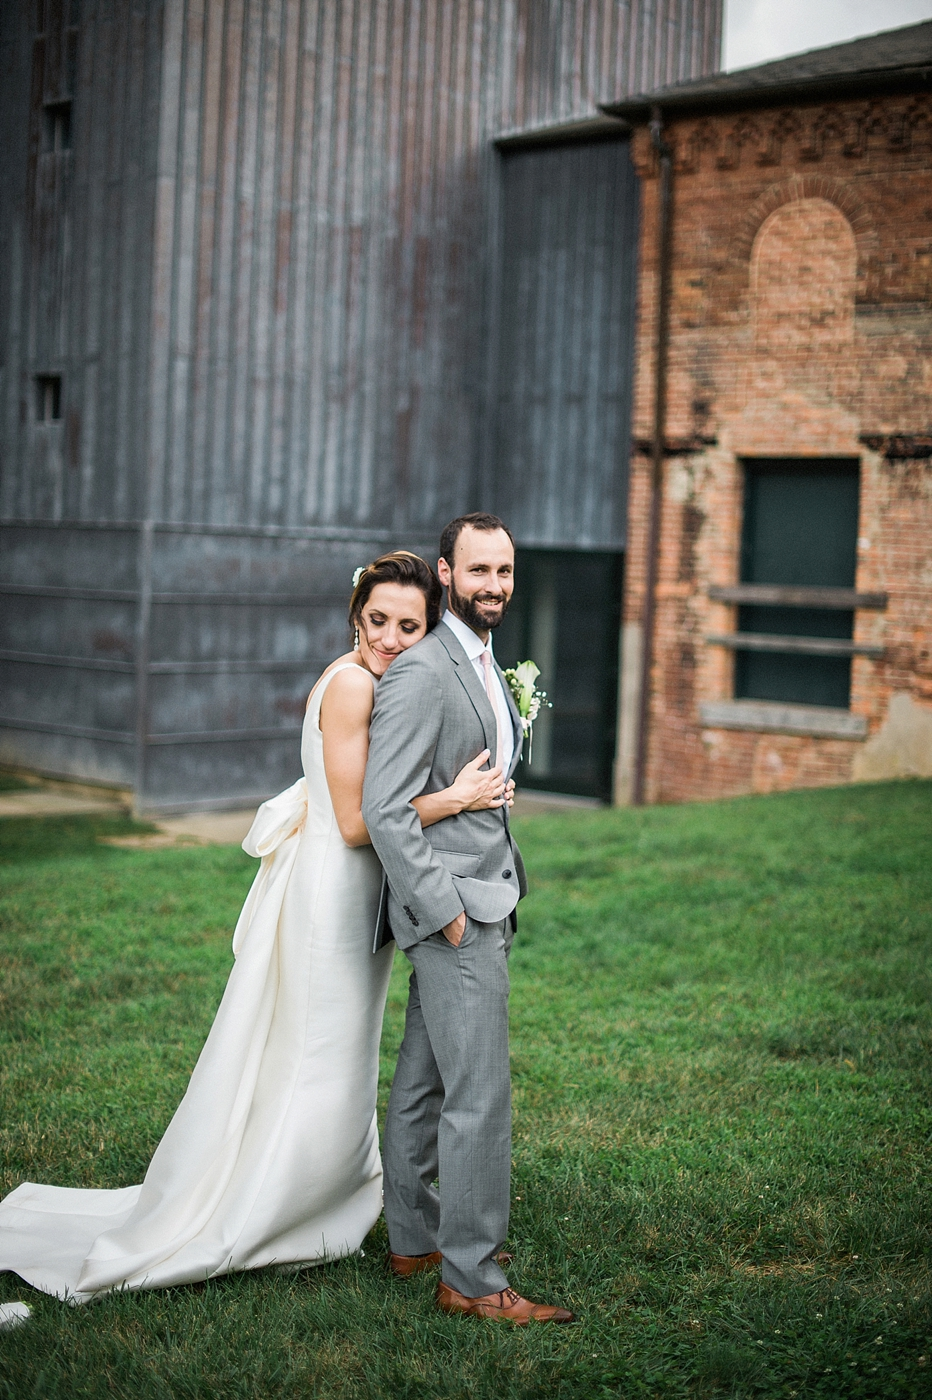 mt-washington-mill-baltimore-wedding-kirsten-marie-photography_1438